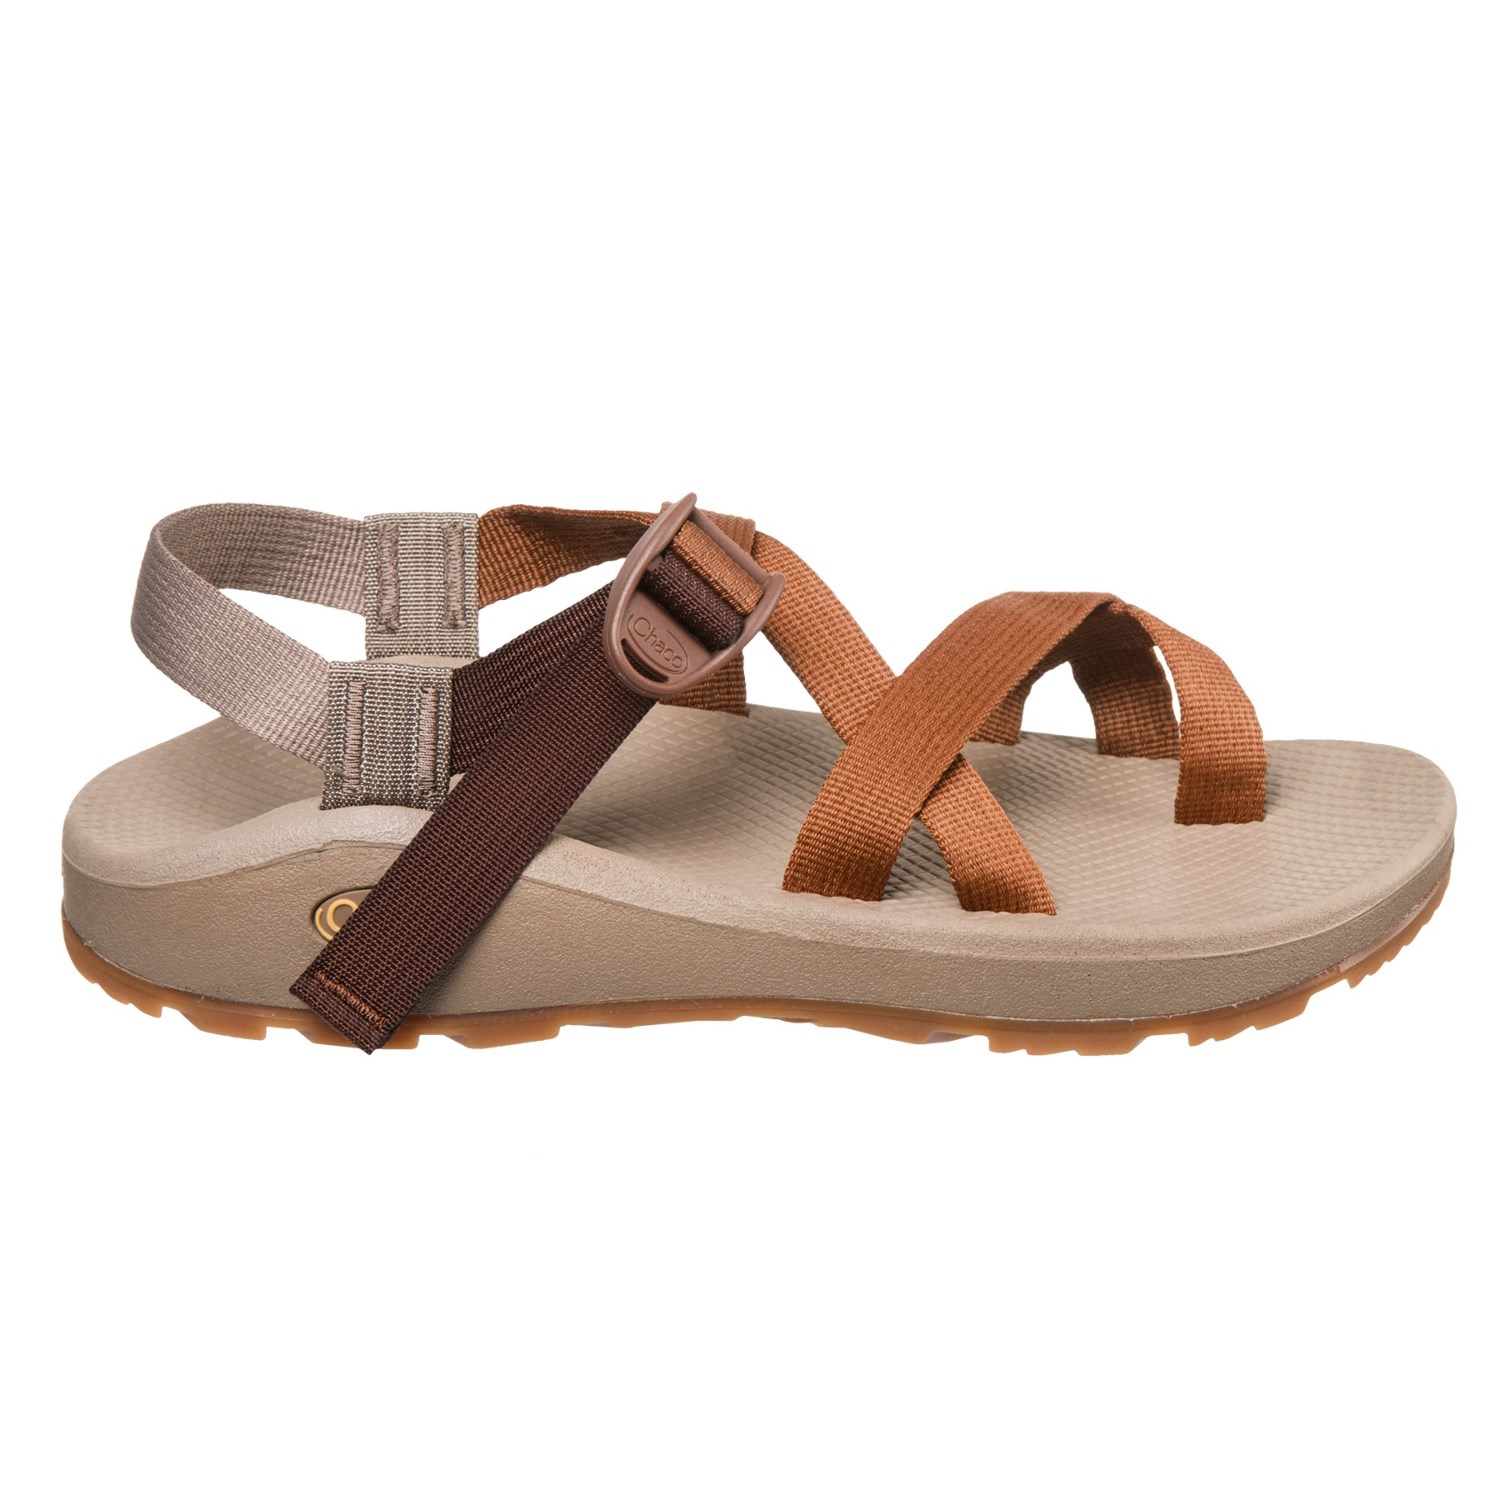 5c42ddb7d63b Chaco Z Cloud 2 Sport Sandals (For Men) - Save 45%